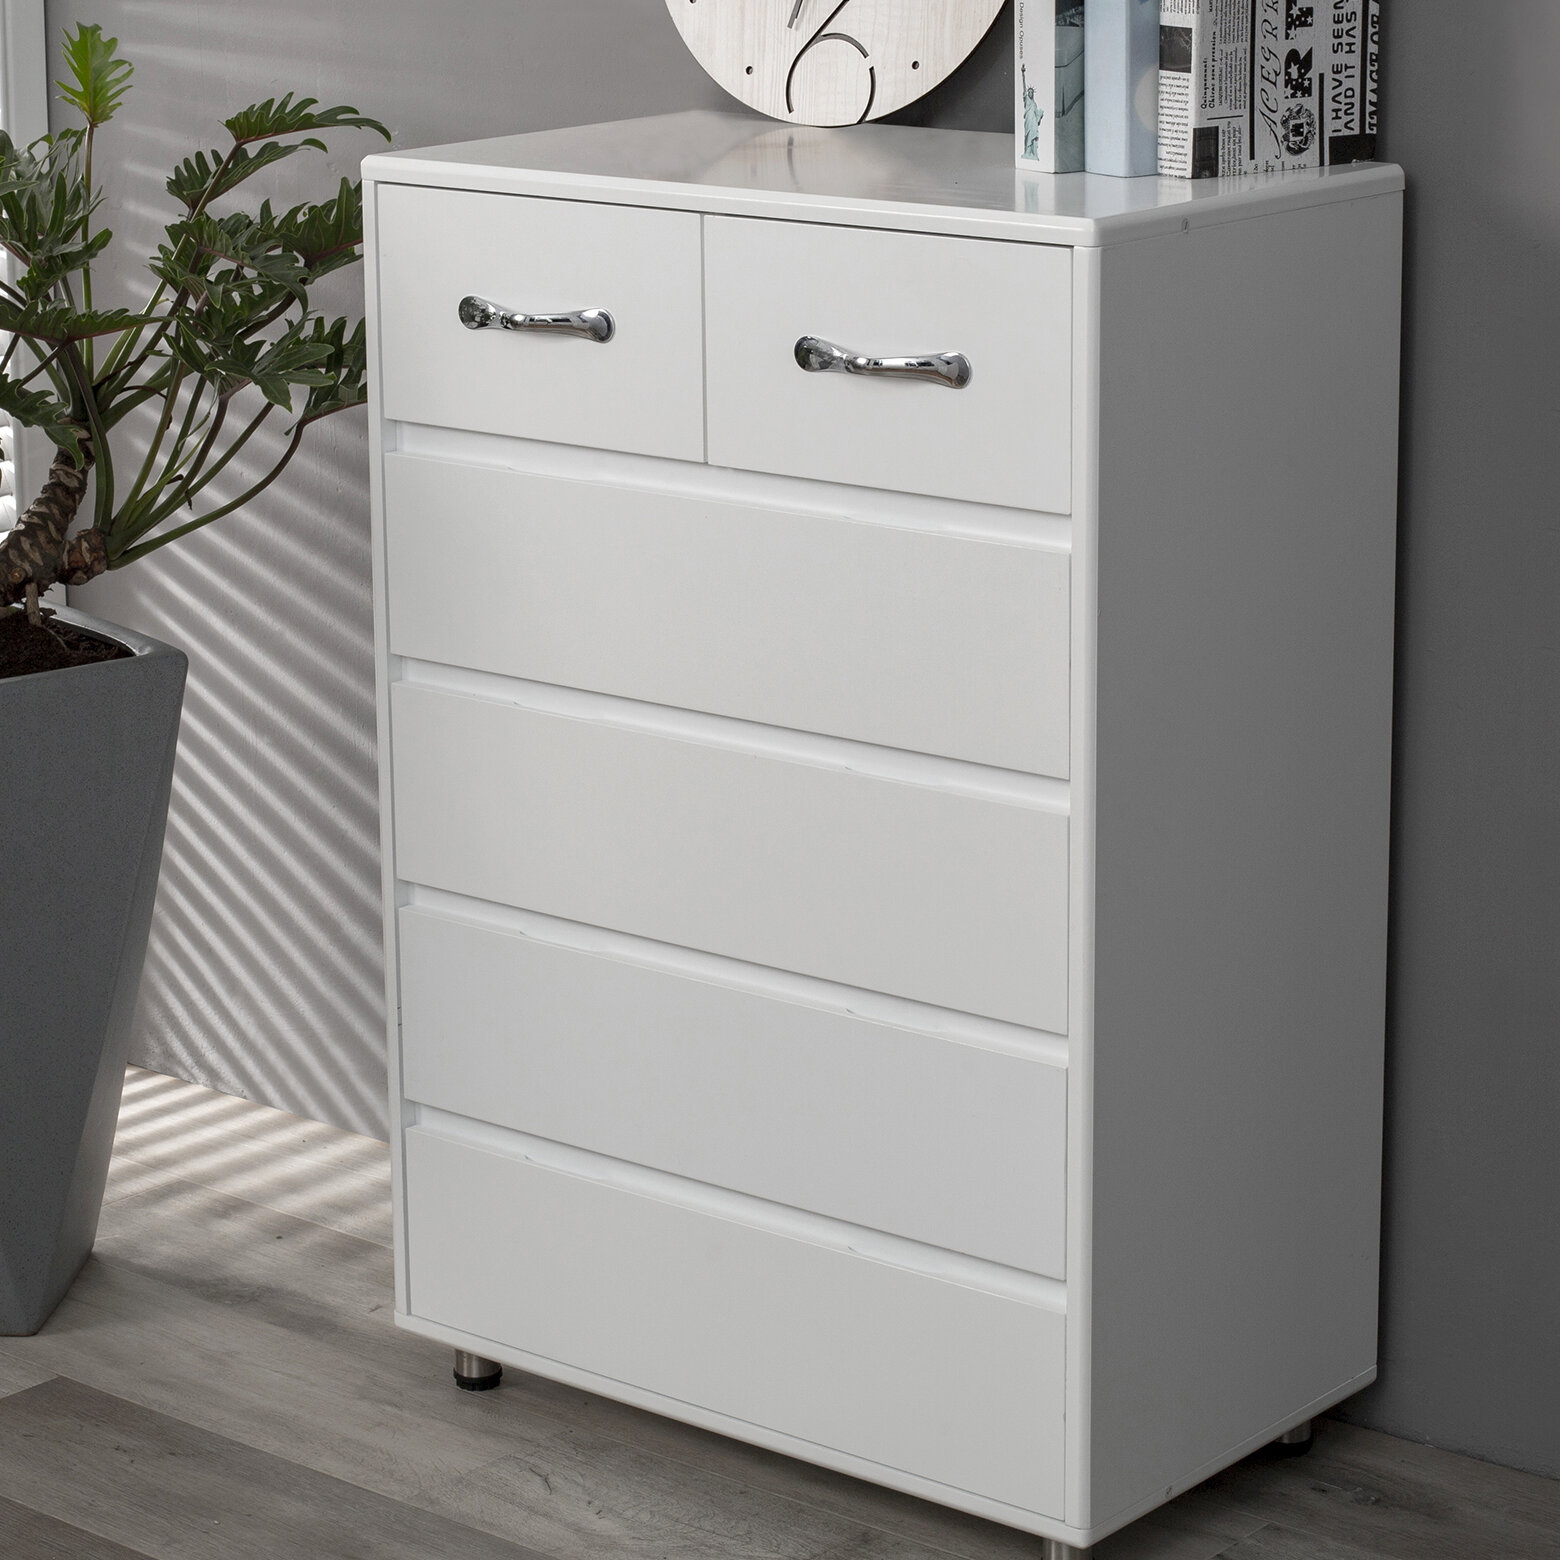 Gold White Small Dressers You Ll Love In 2021 Wayfair